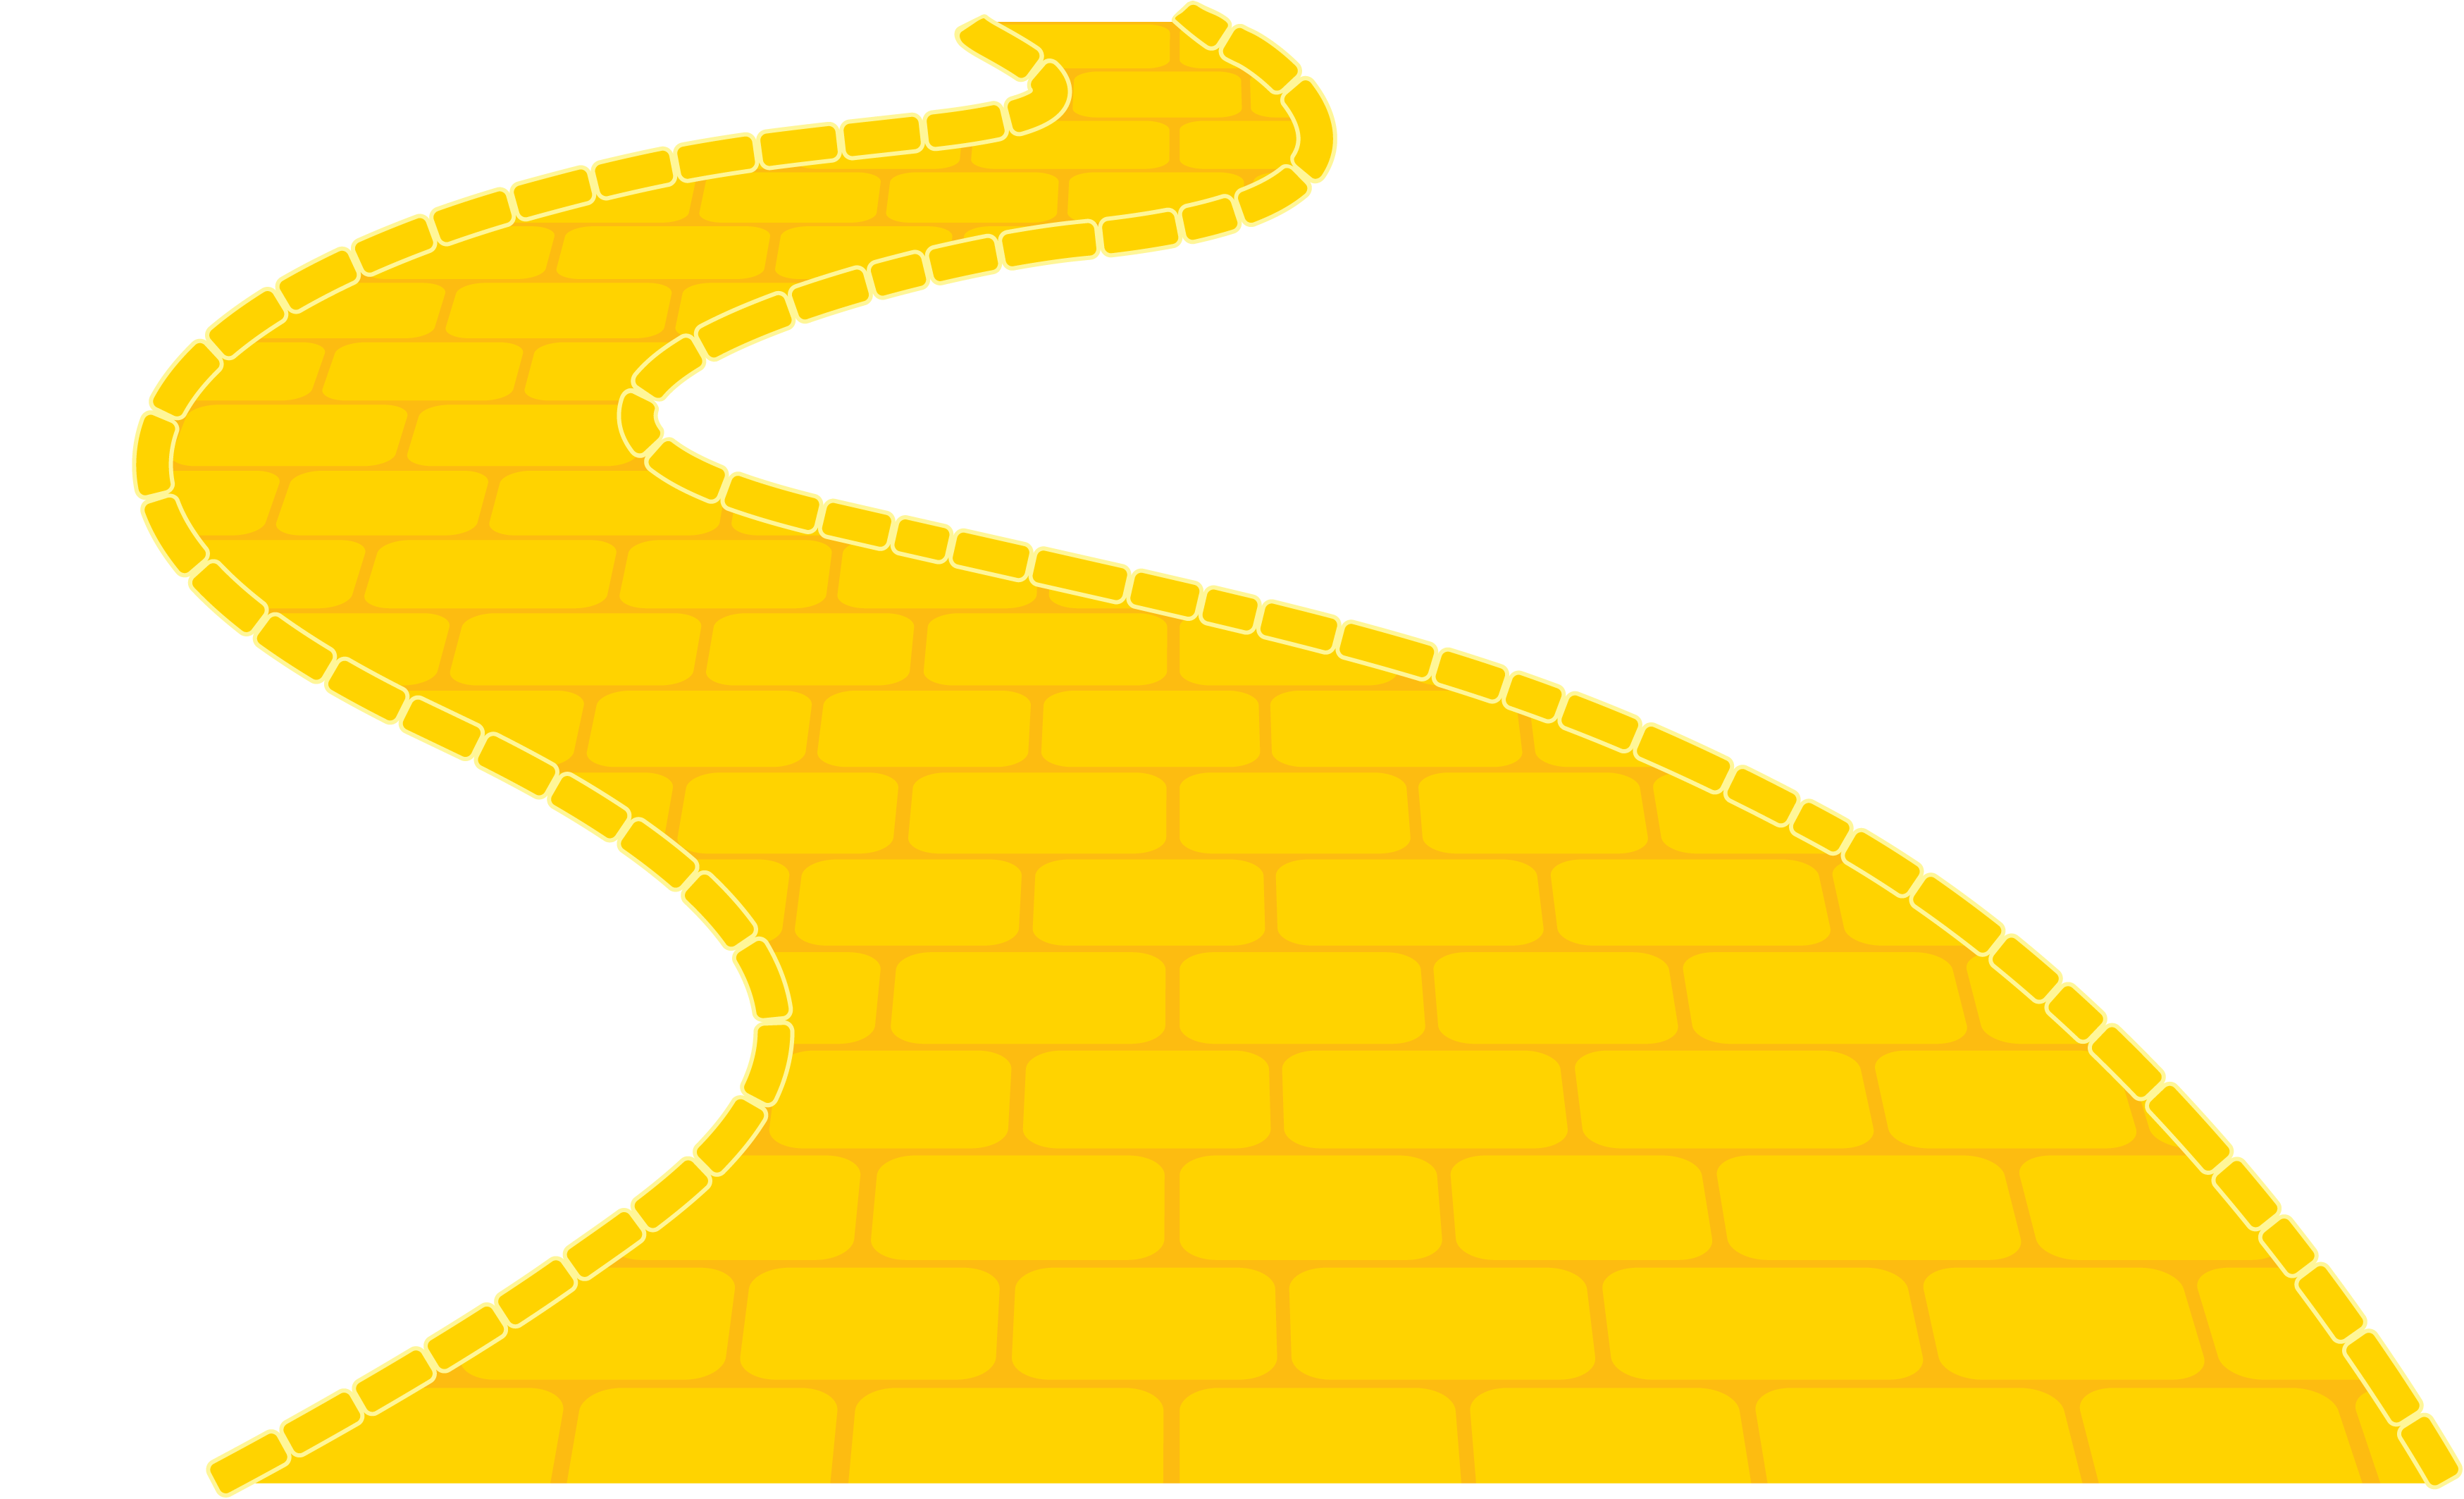 Brick clipart brick road.